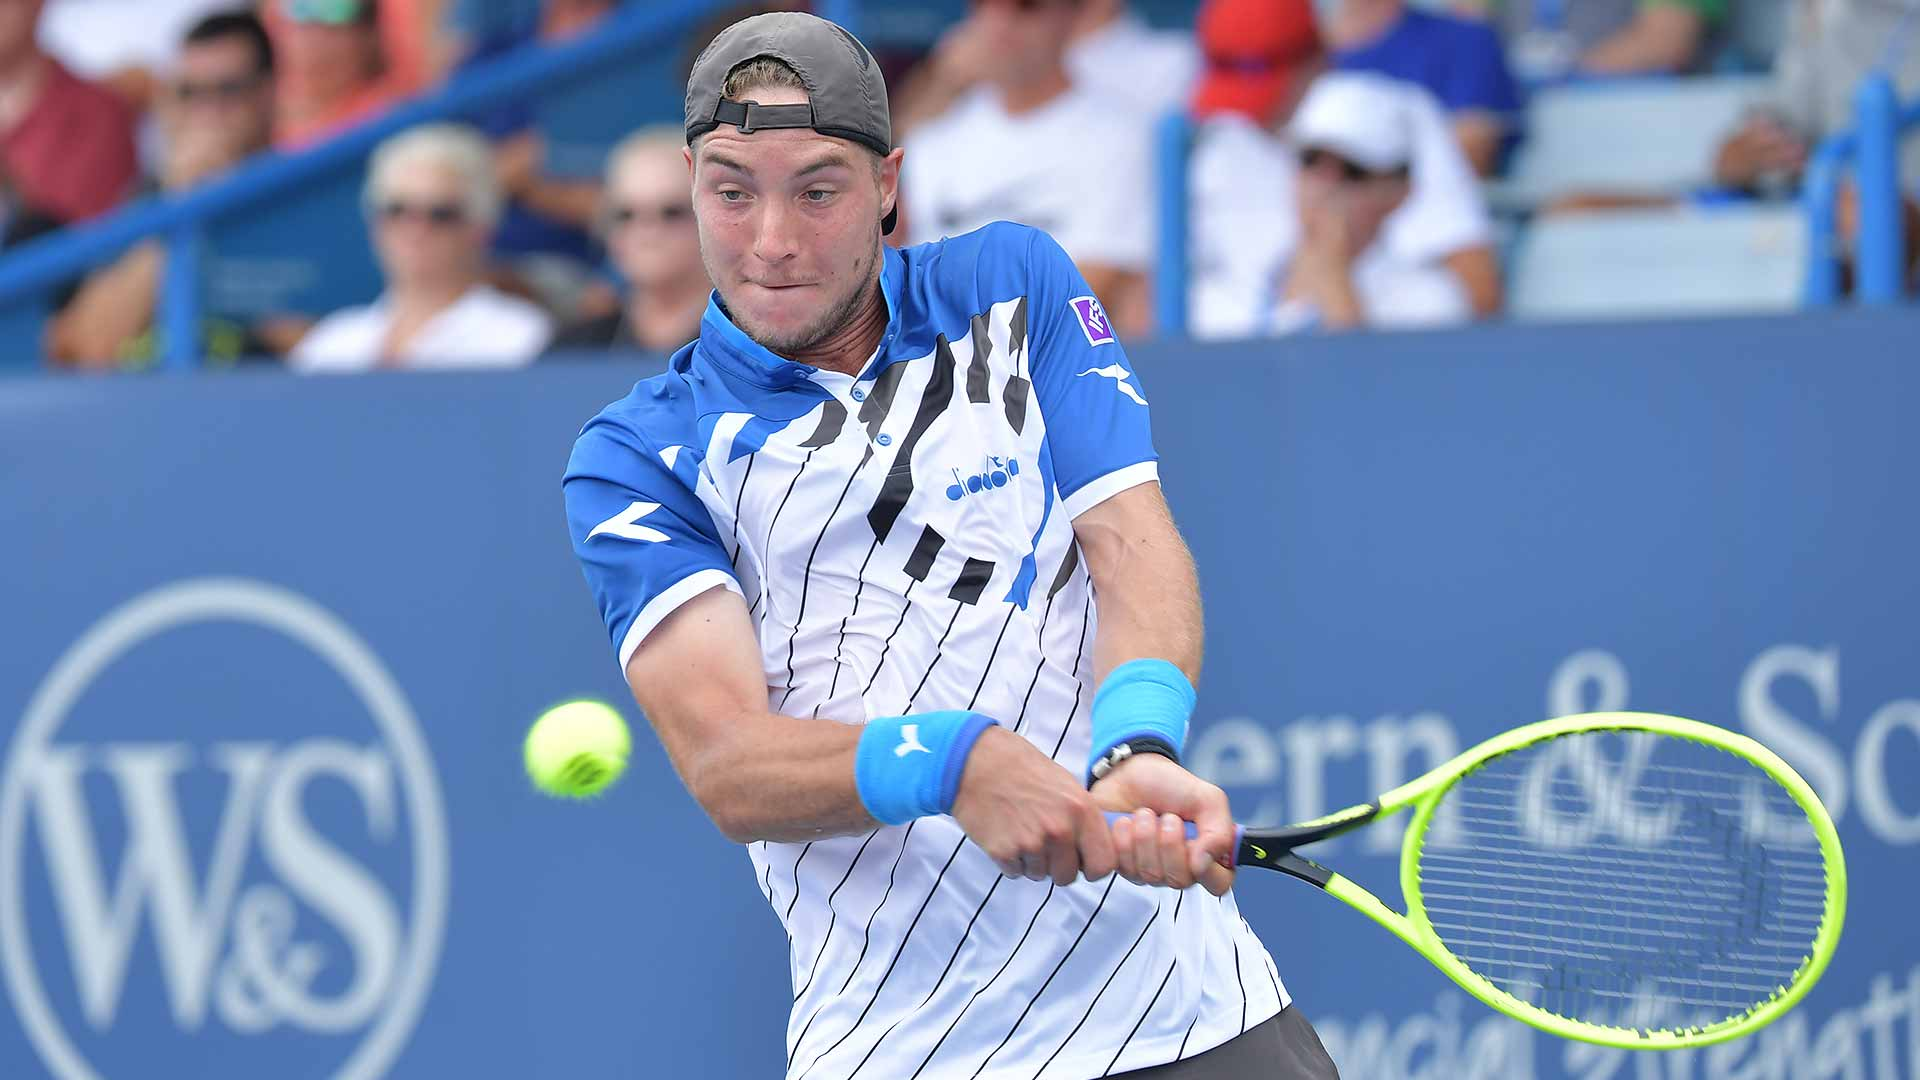 Jan-Lennard Struff beats Stefanos Tsitsipas on Wednesday to reach the third round of the Western & Southern Open in Cincinnati